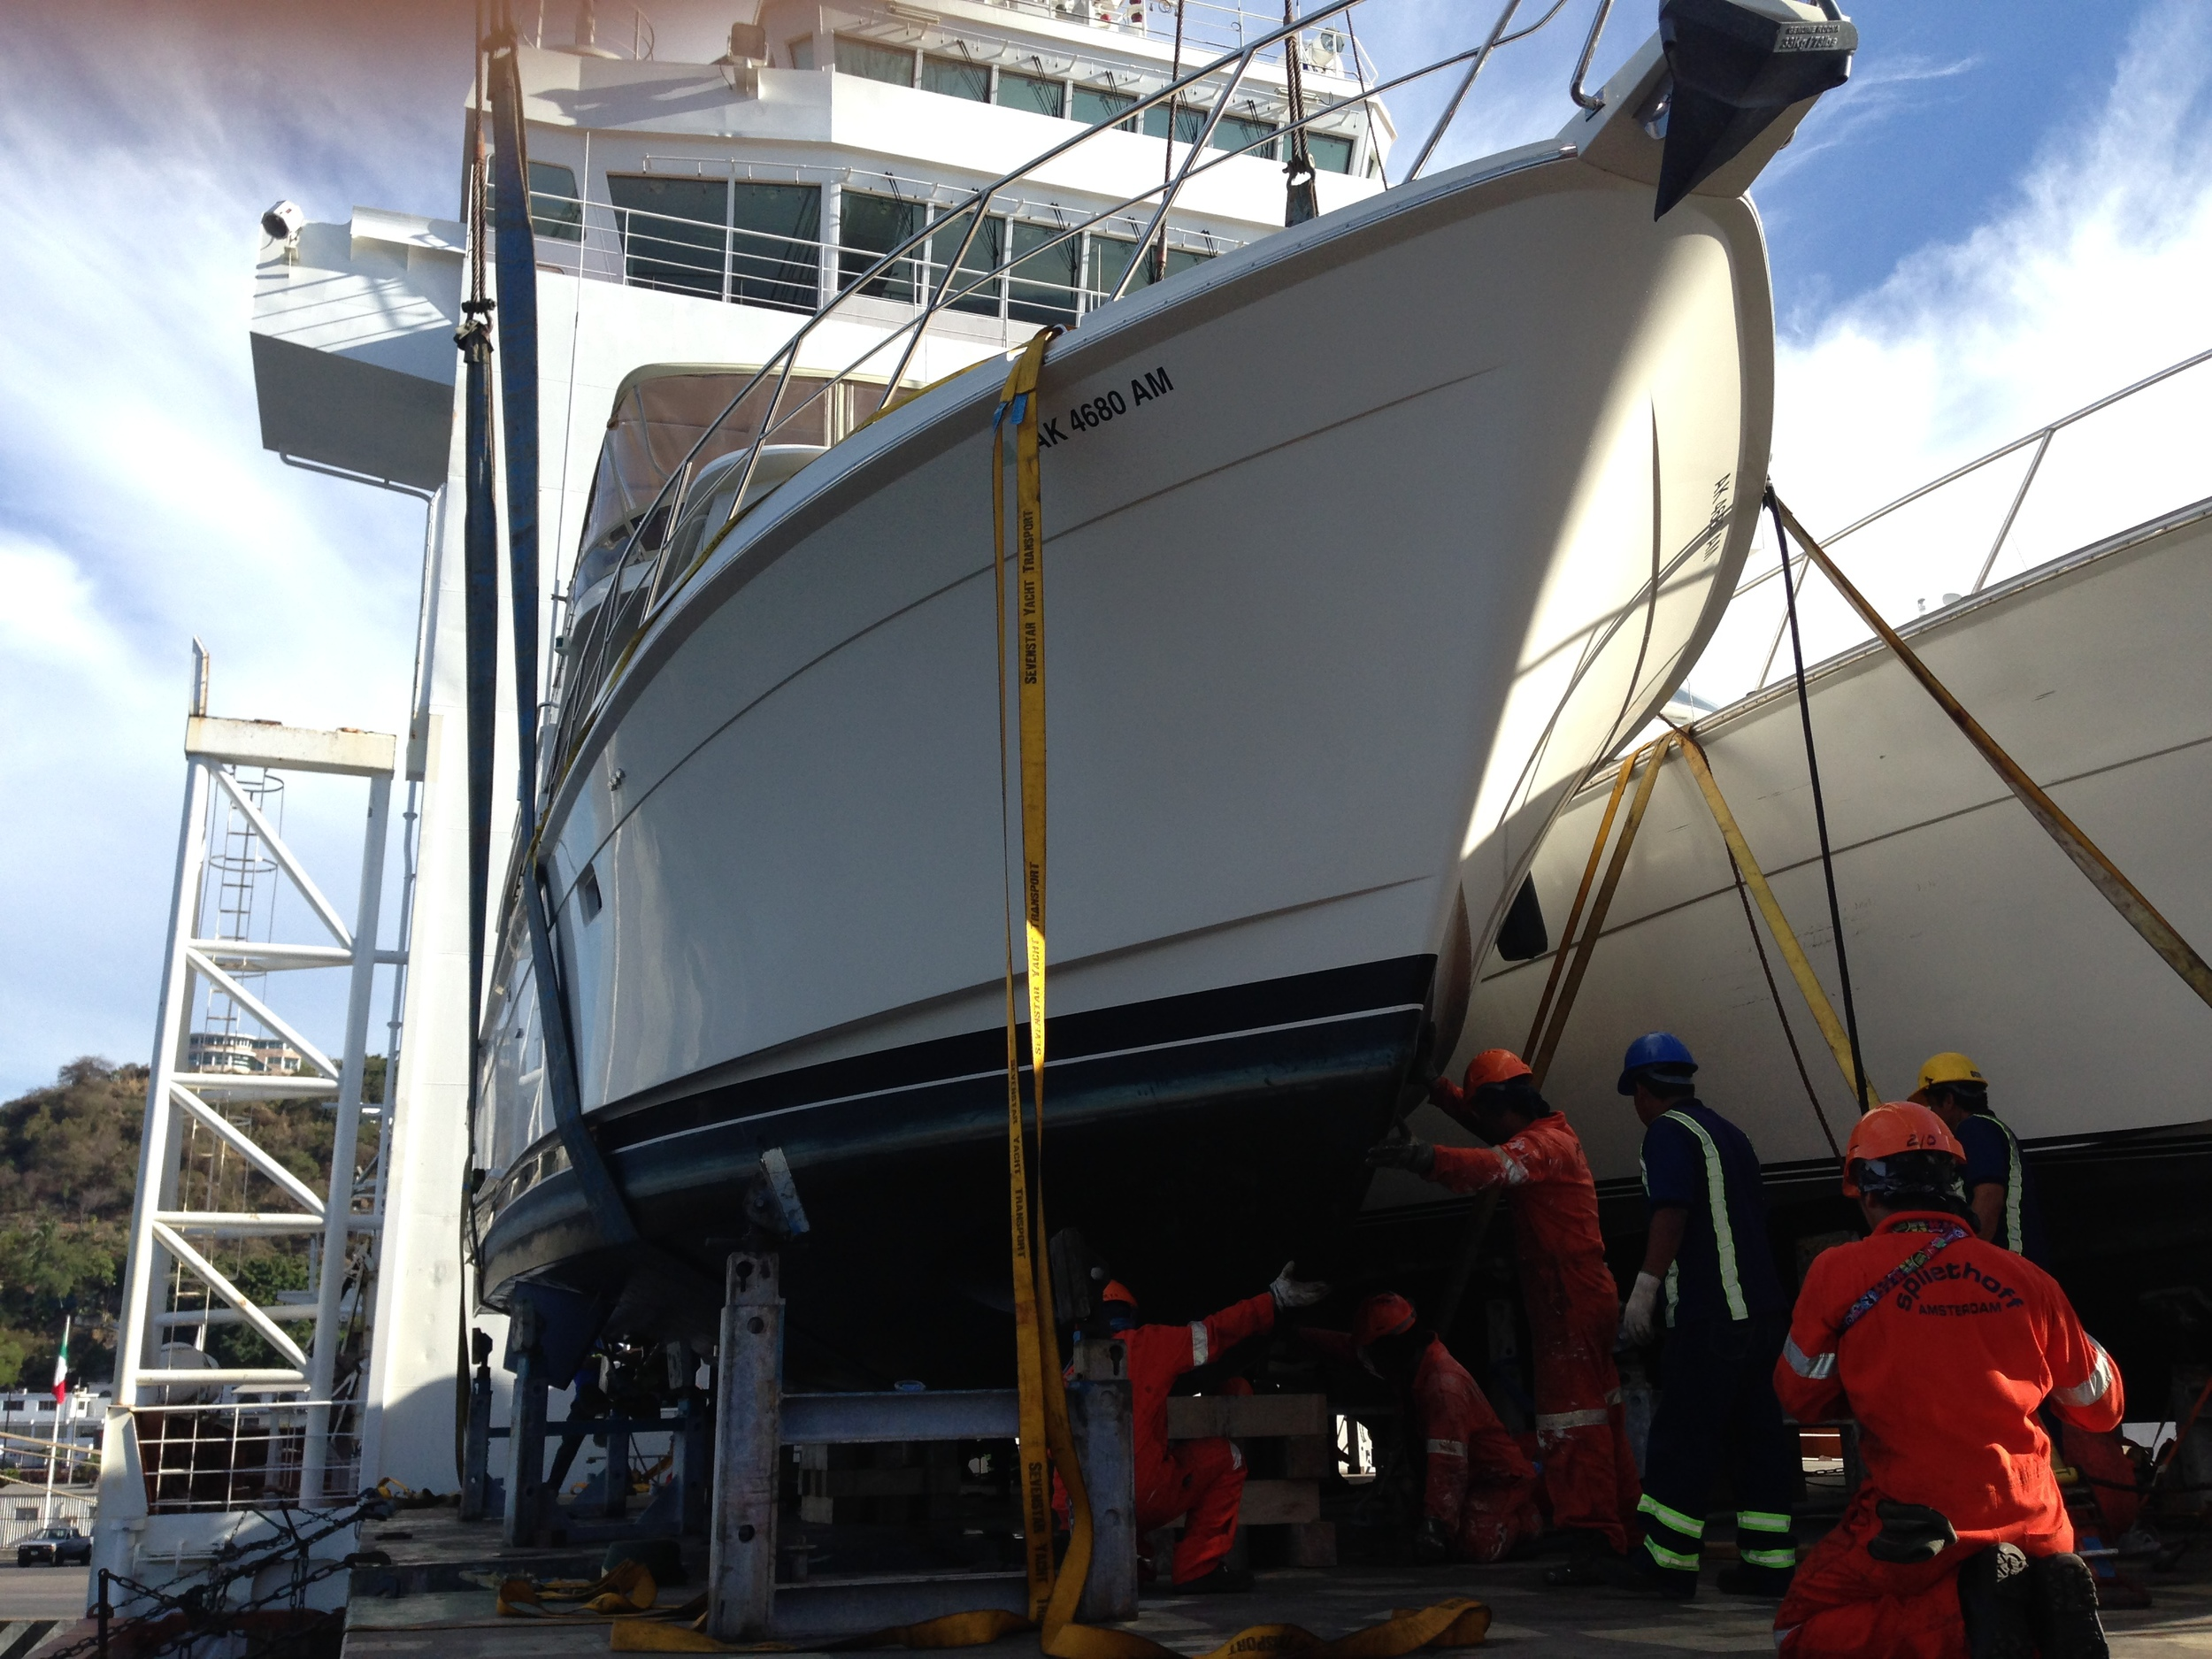 Loading an Offshore 55' in Manzanillo to head to Alaska